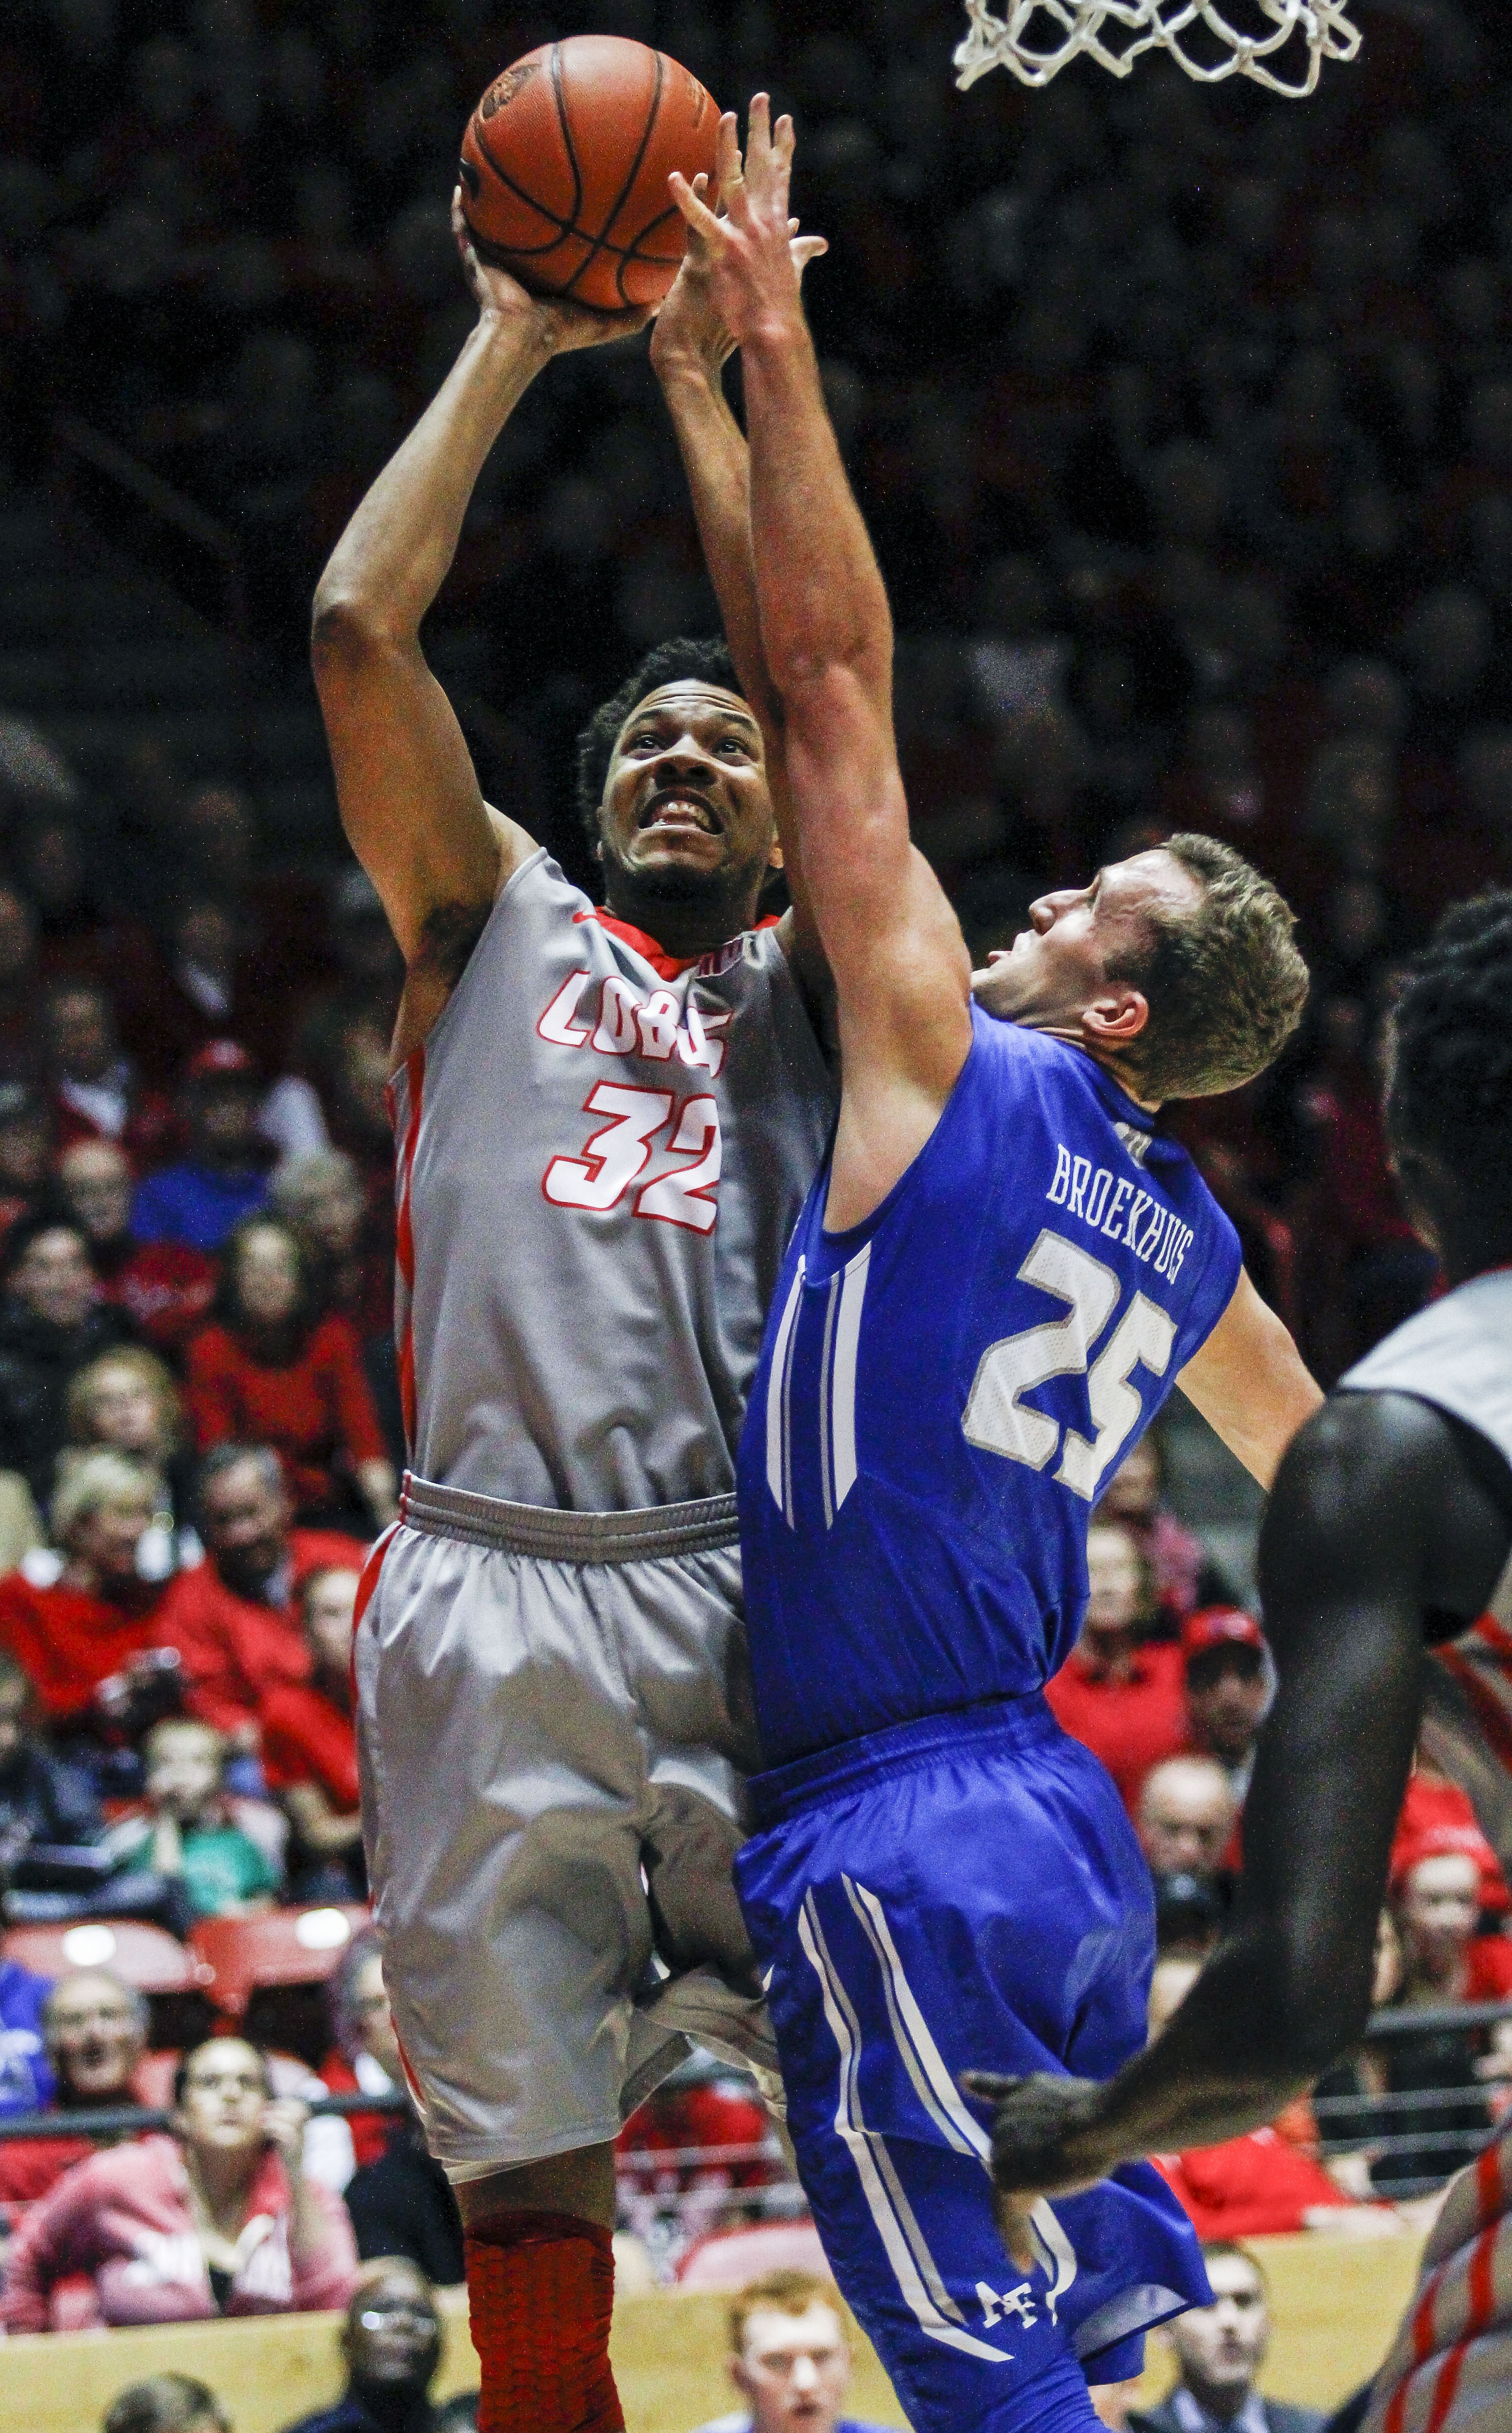 New Mexico's Tim Williams (32) shoots over Air Force's Kyle Broekhuis (25) during the first half an NCAA college basketball game, Wednesday, Jan. 27, 2016, in Albuquerque, N.M. (AP Photo/Juan Labreche)